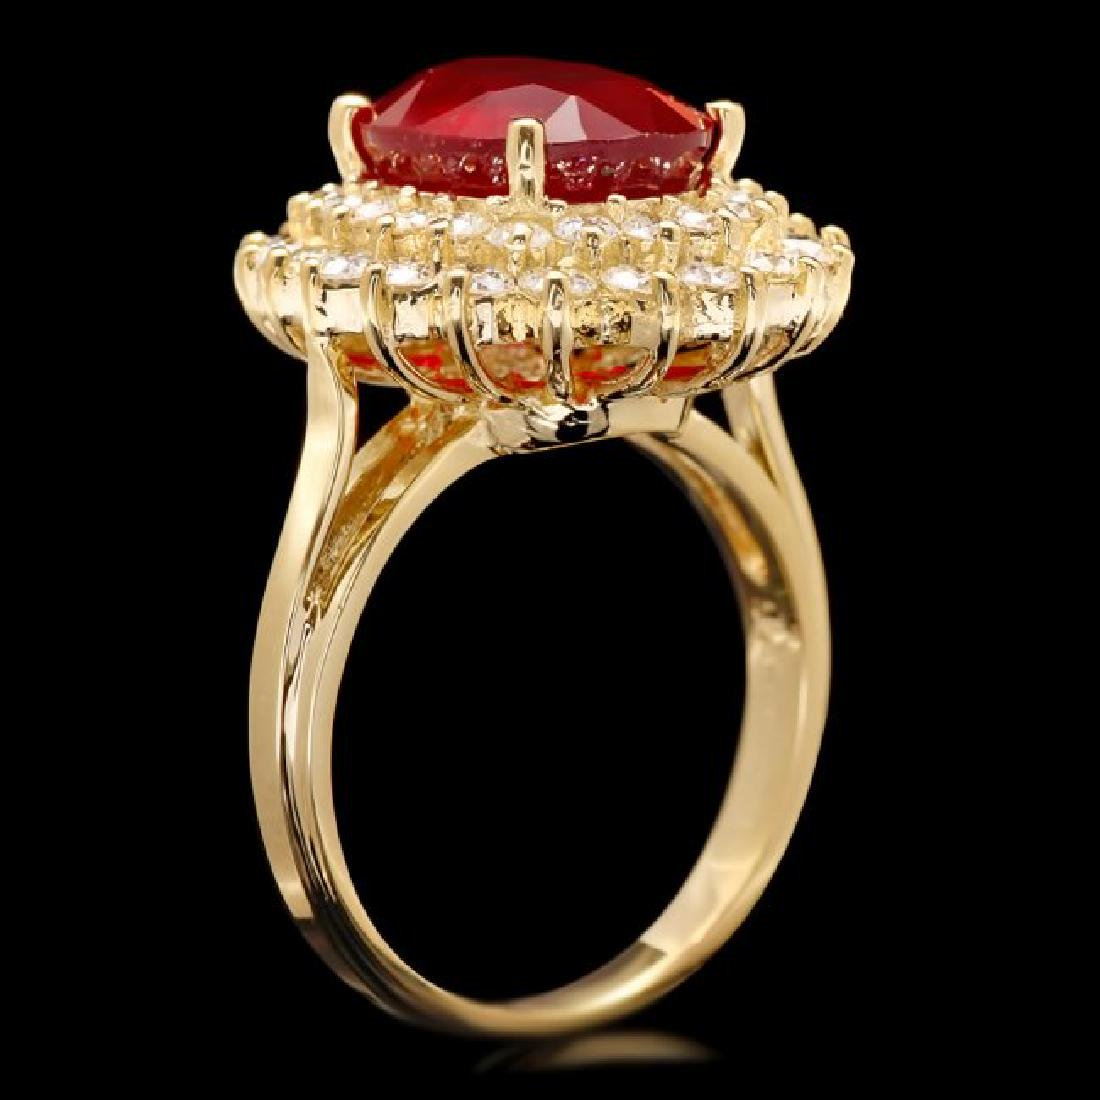 14k Yellow Gold 6.20ct Ruby 1.50ct Diamond Ring - 2